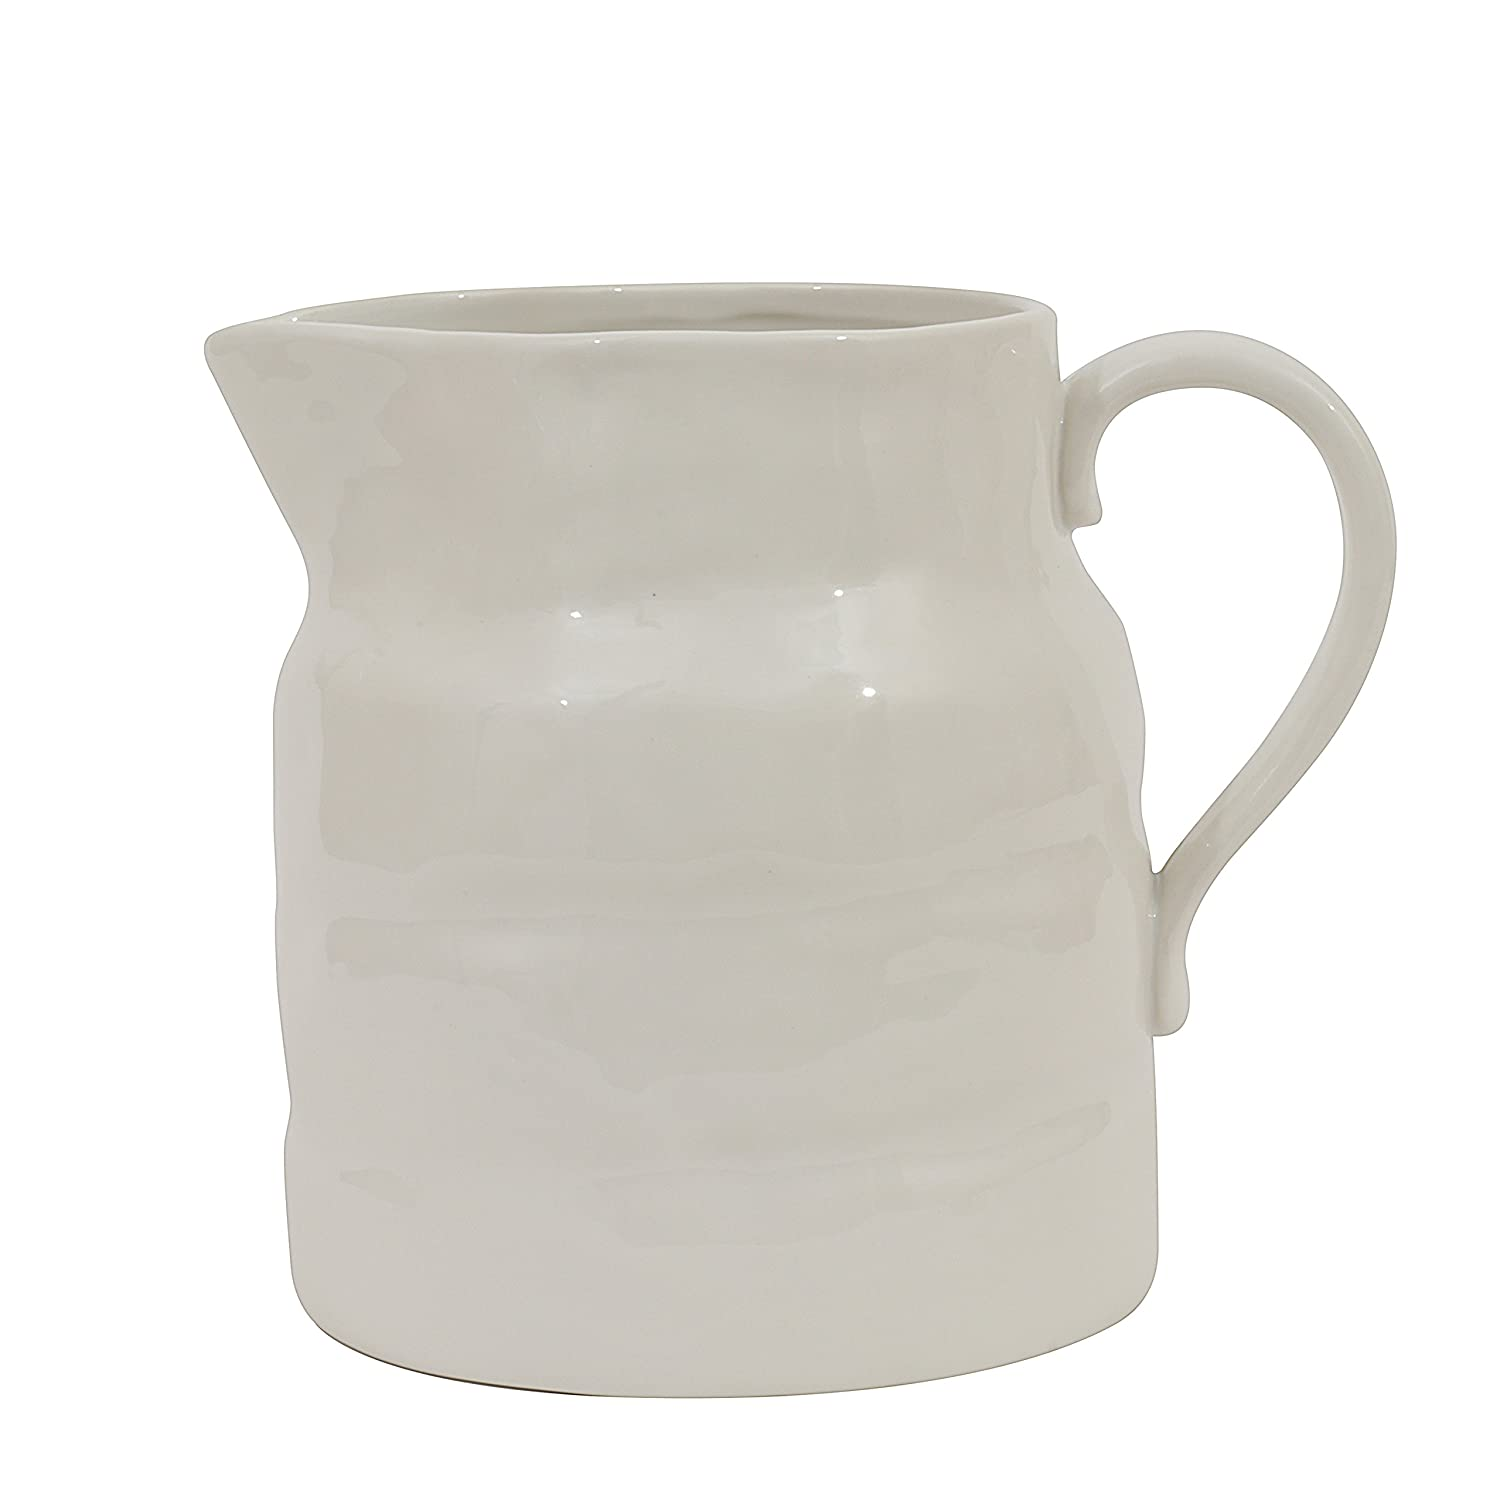 White vintage style stoneware pitcher for French farmhouse kitchens and European country decorating and interior design.